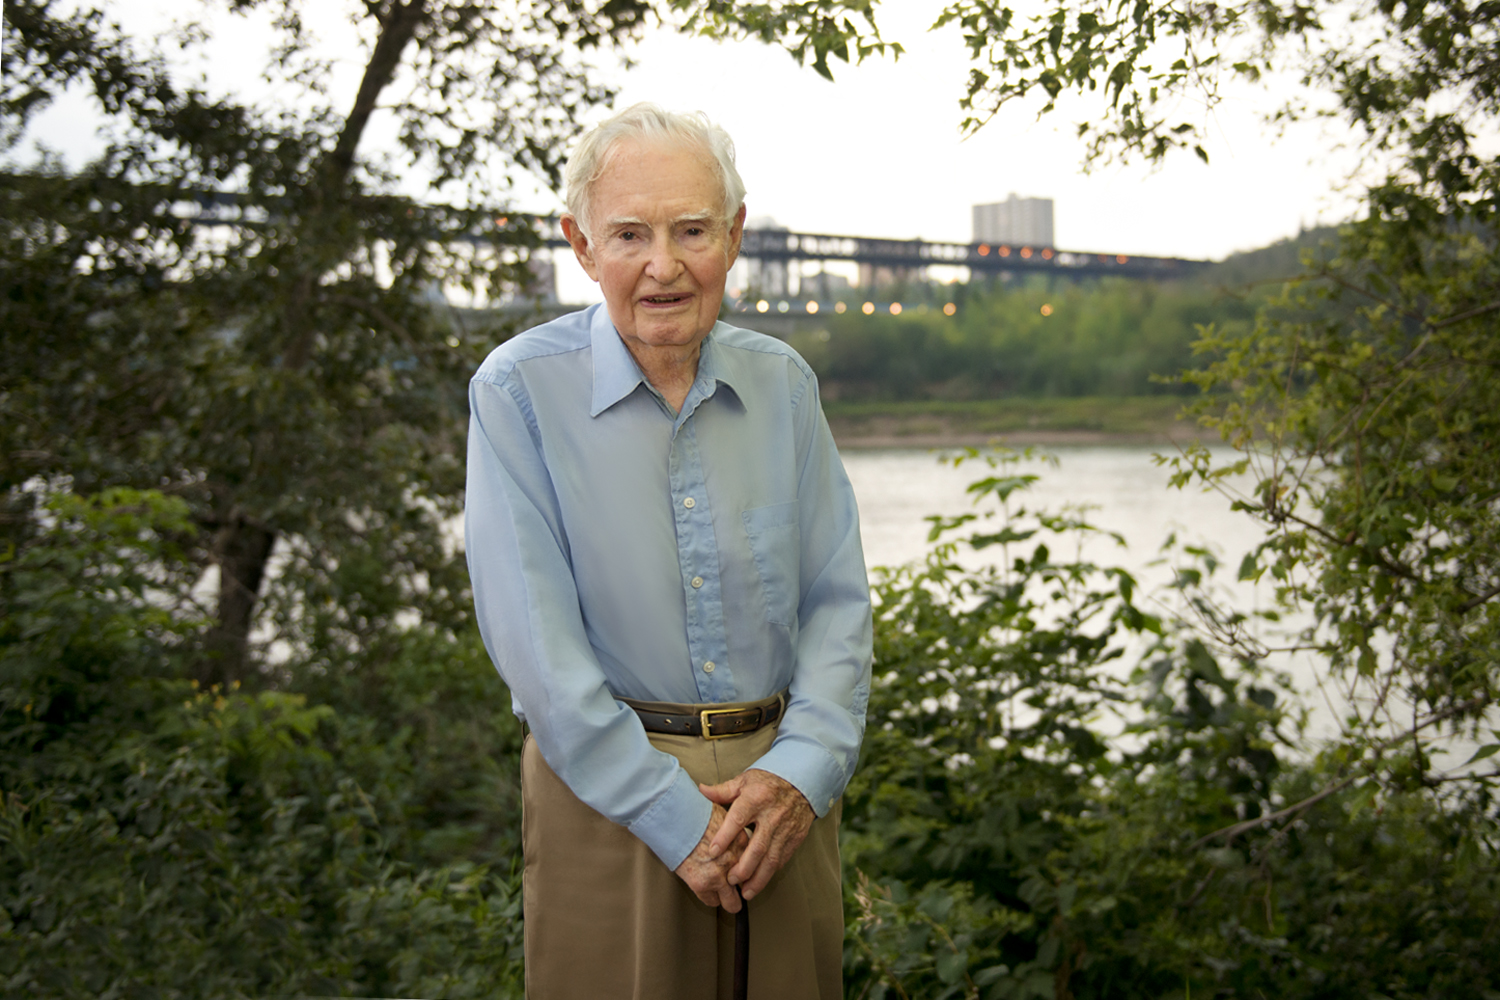 The Author, a sharp 91 years young, on the bank of the North Saskatchewan River overlooking the High Level Bridge, not far from the former site of John Walter's Ferry.   This portrait was taken as part of the Author's investiture with the   Alberta Order of Excellence  .